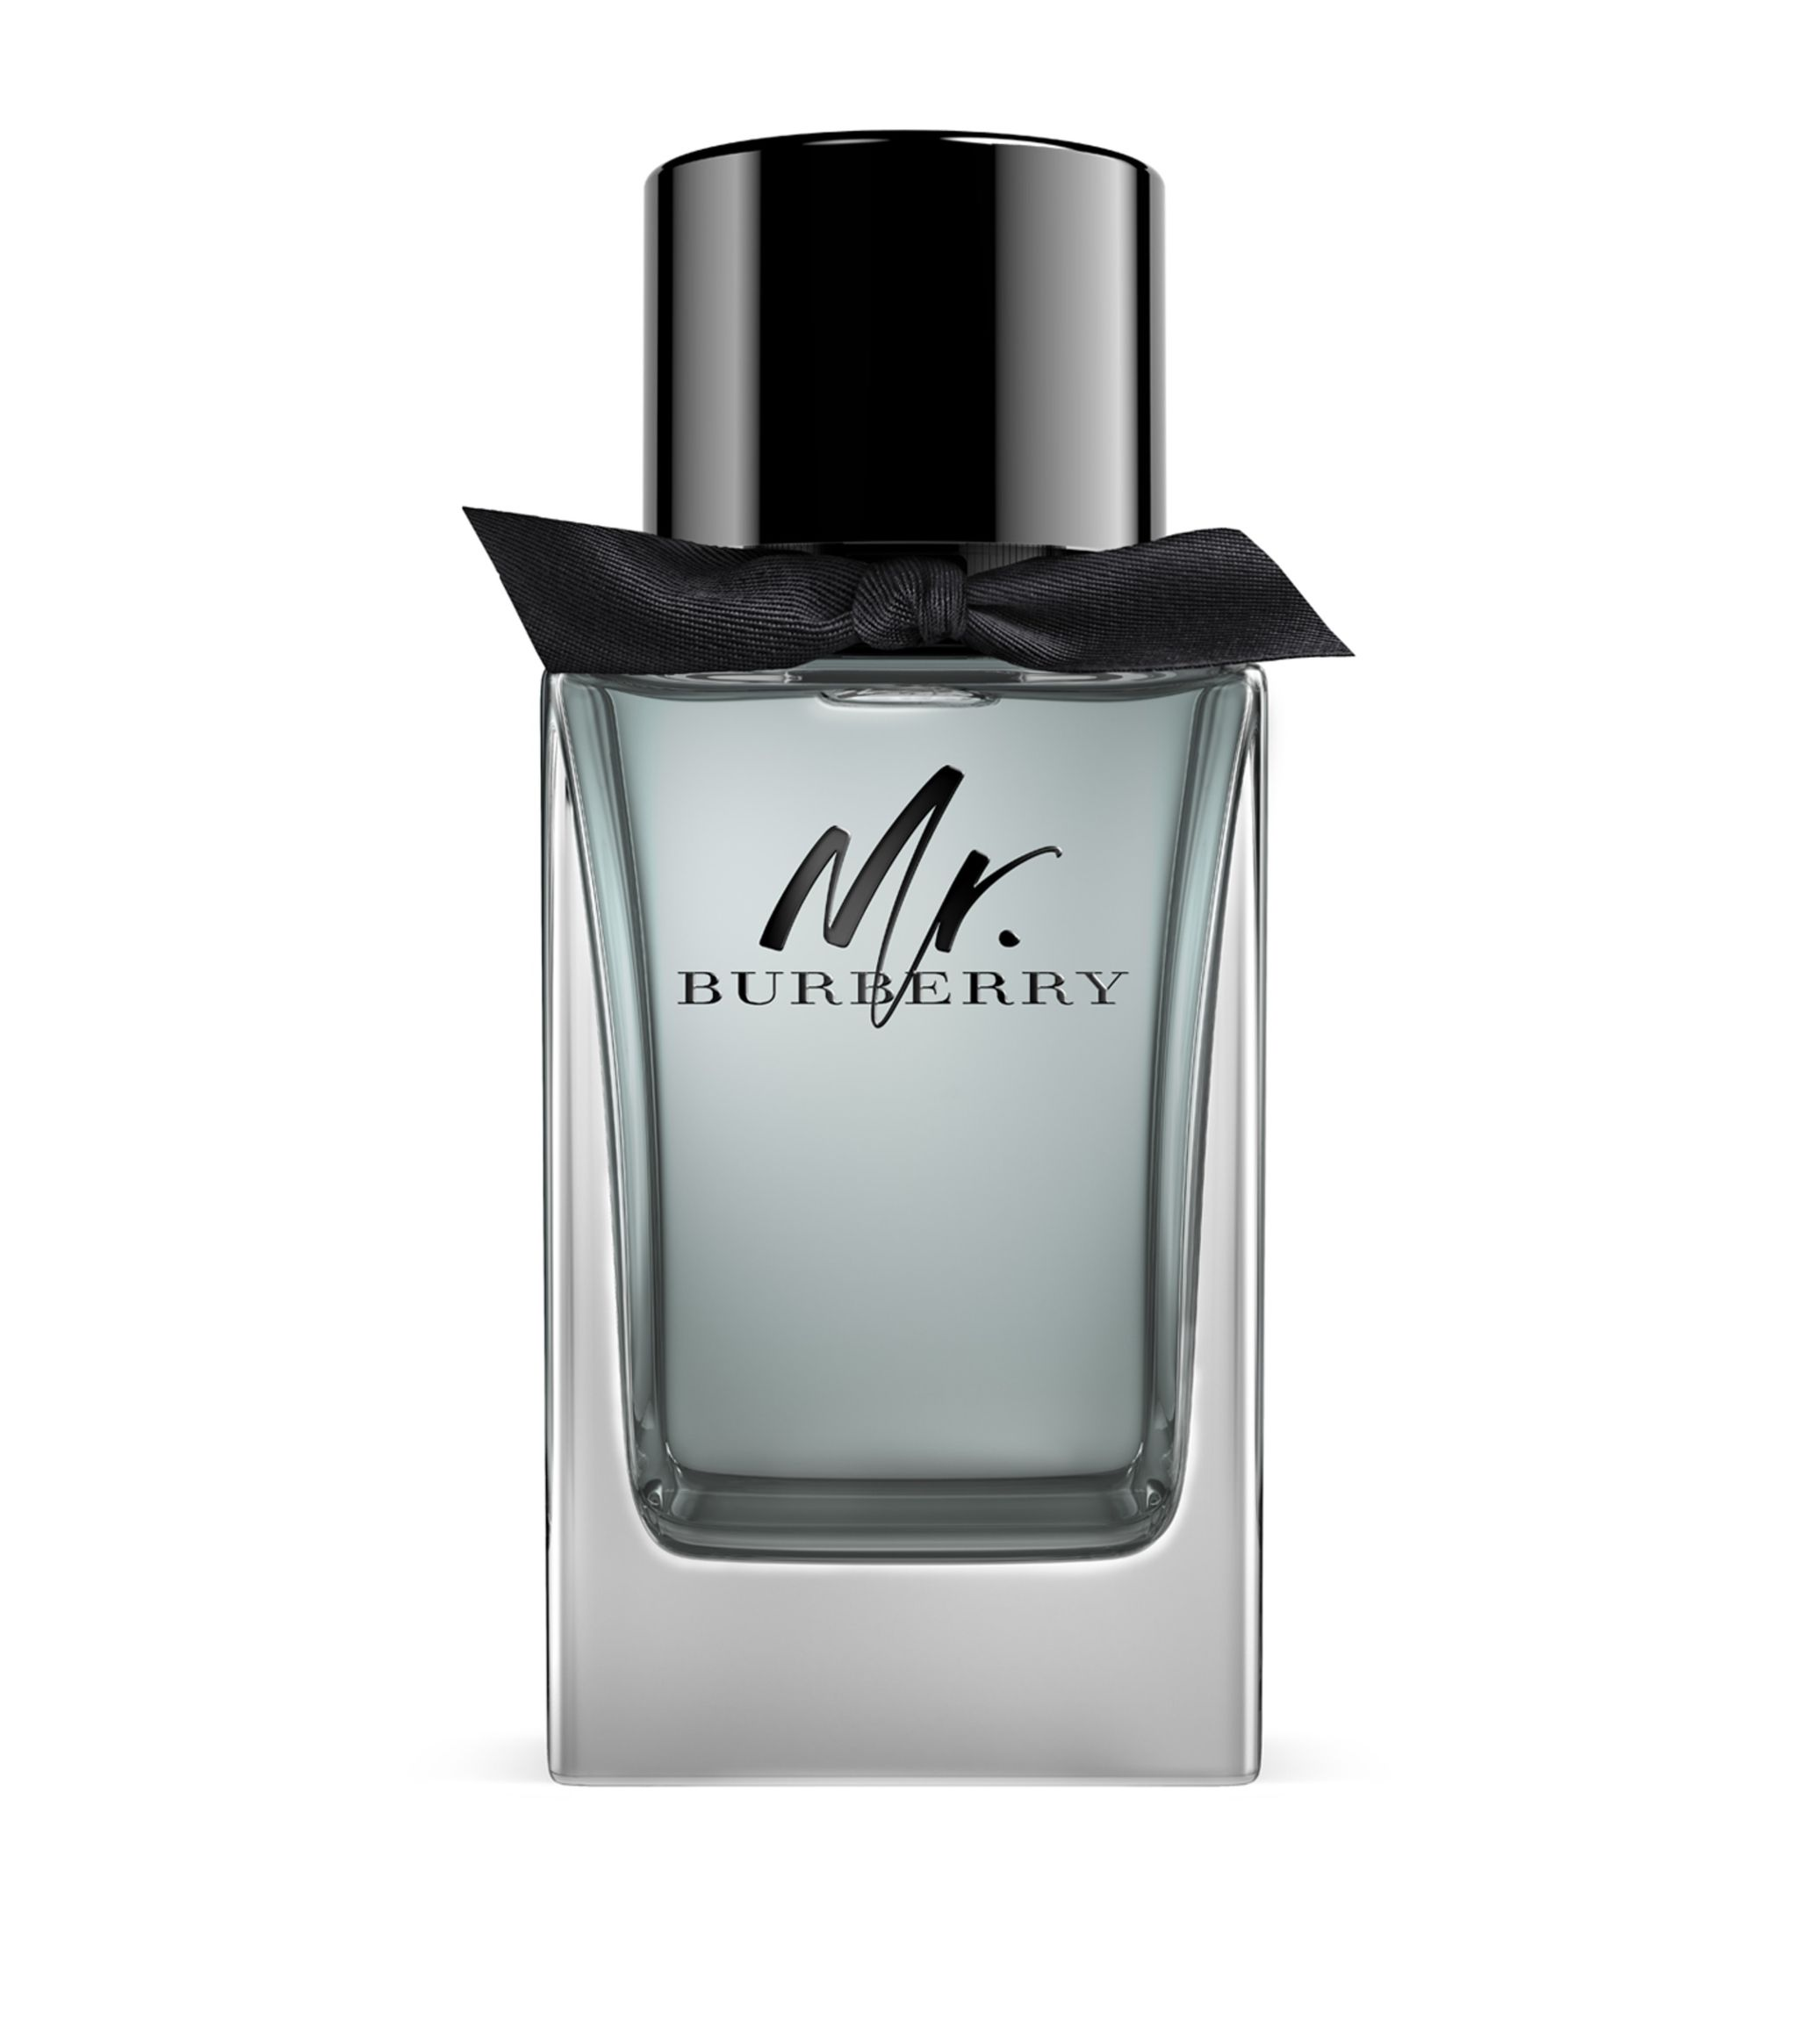 Burberry Mr Burberry -  Eau de Toilette For Men 100 ml